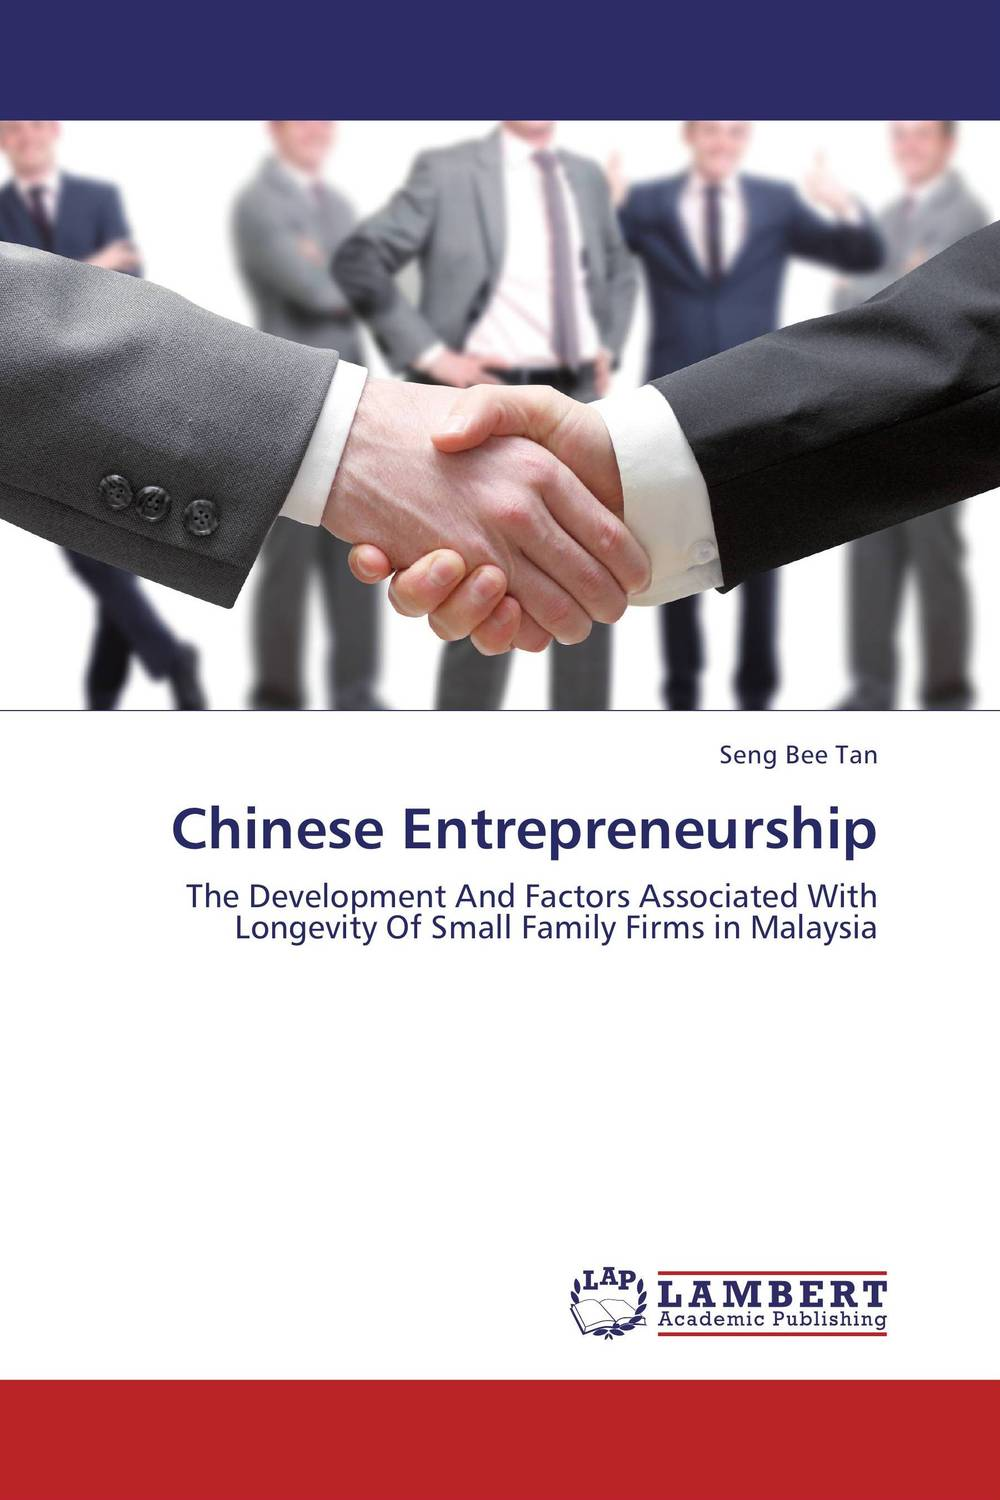 Chinese Entrepreneurship on a chinese screen